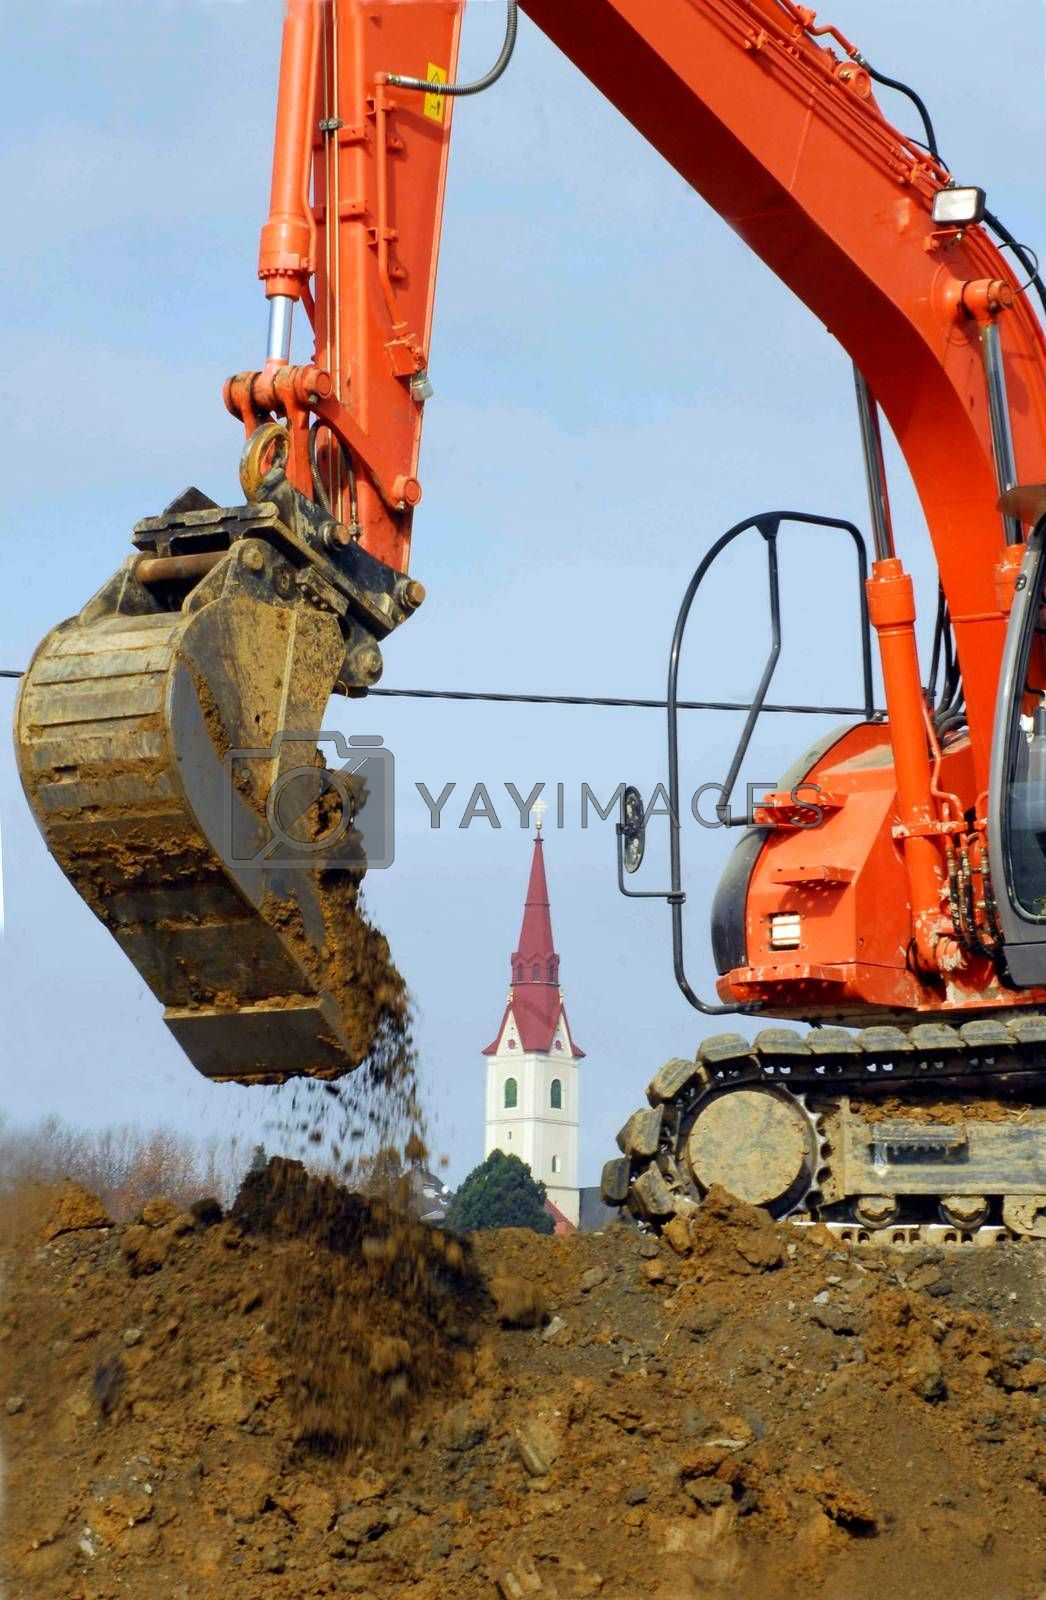 village renewal in the countryside through building and construction works